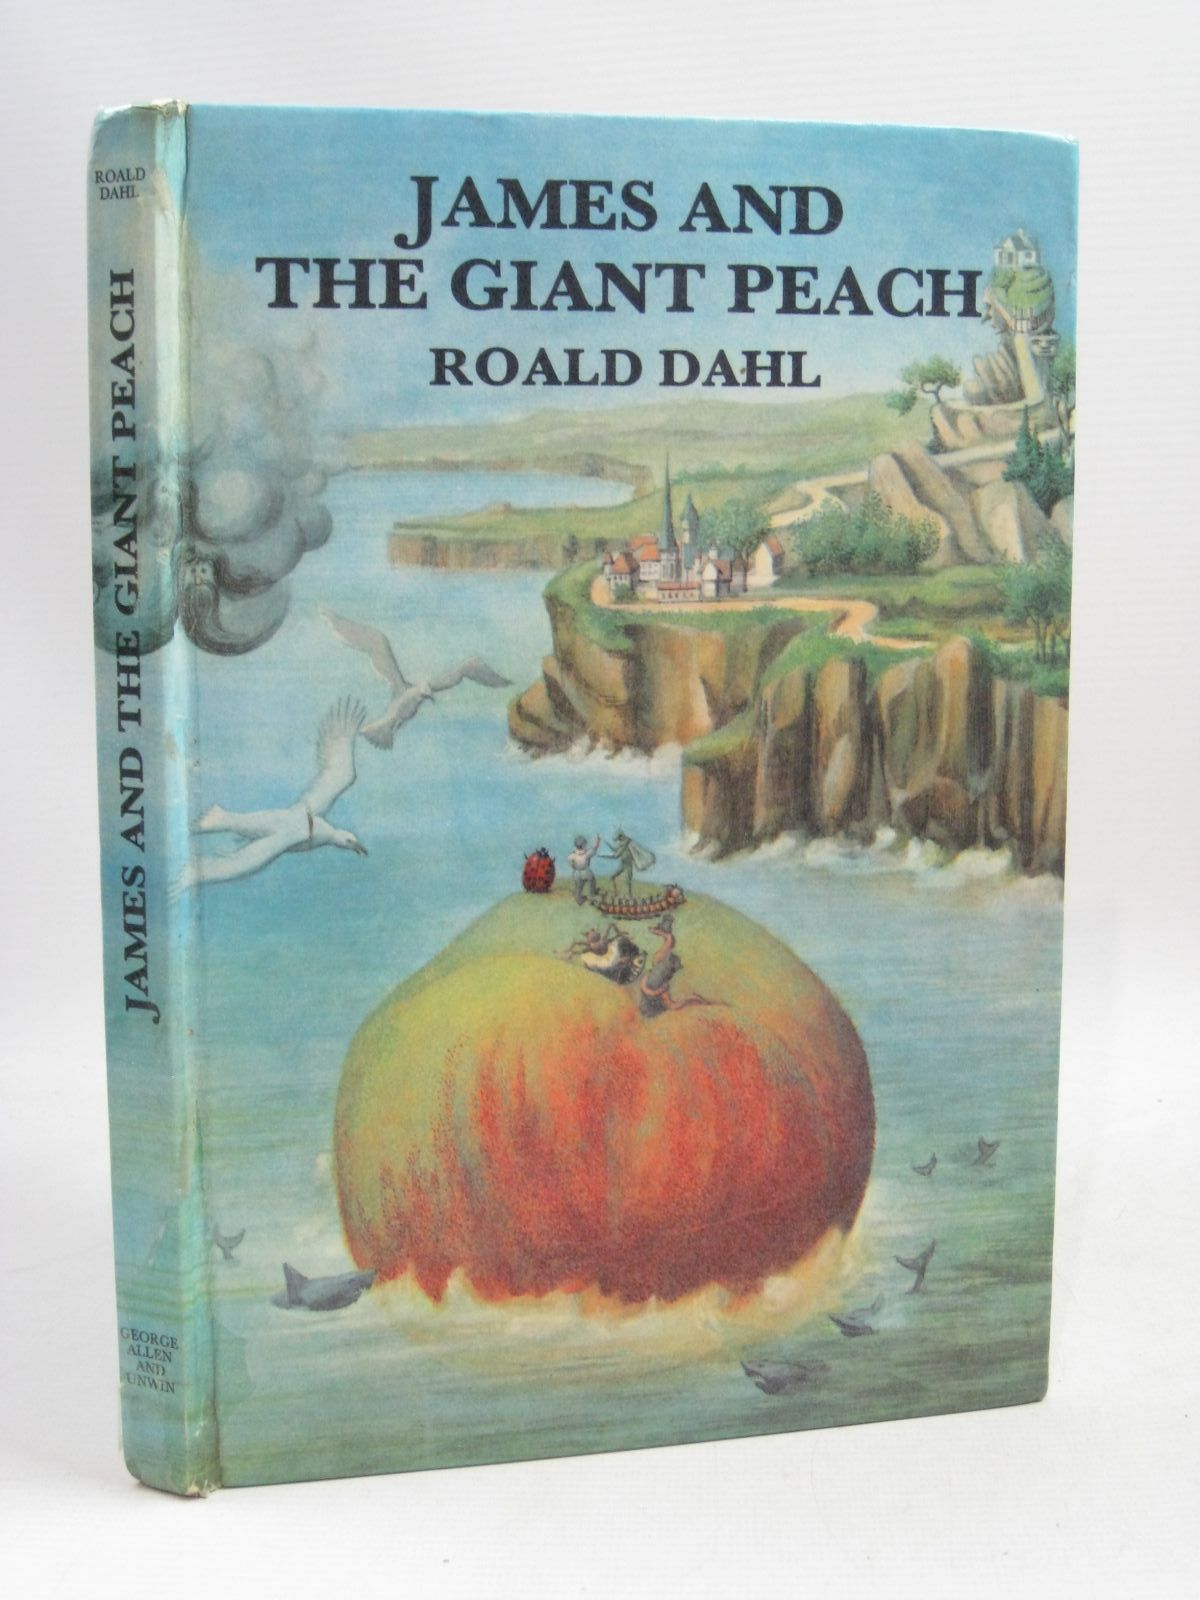 Cover of JAMES AND THE GIANT PEACH by Roald Dahl